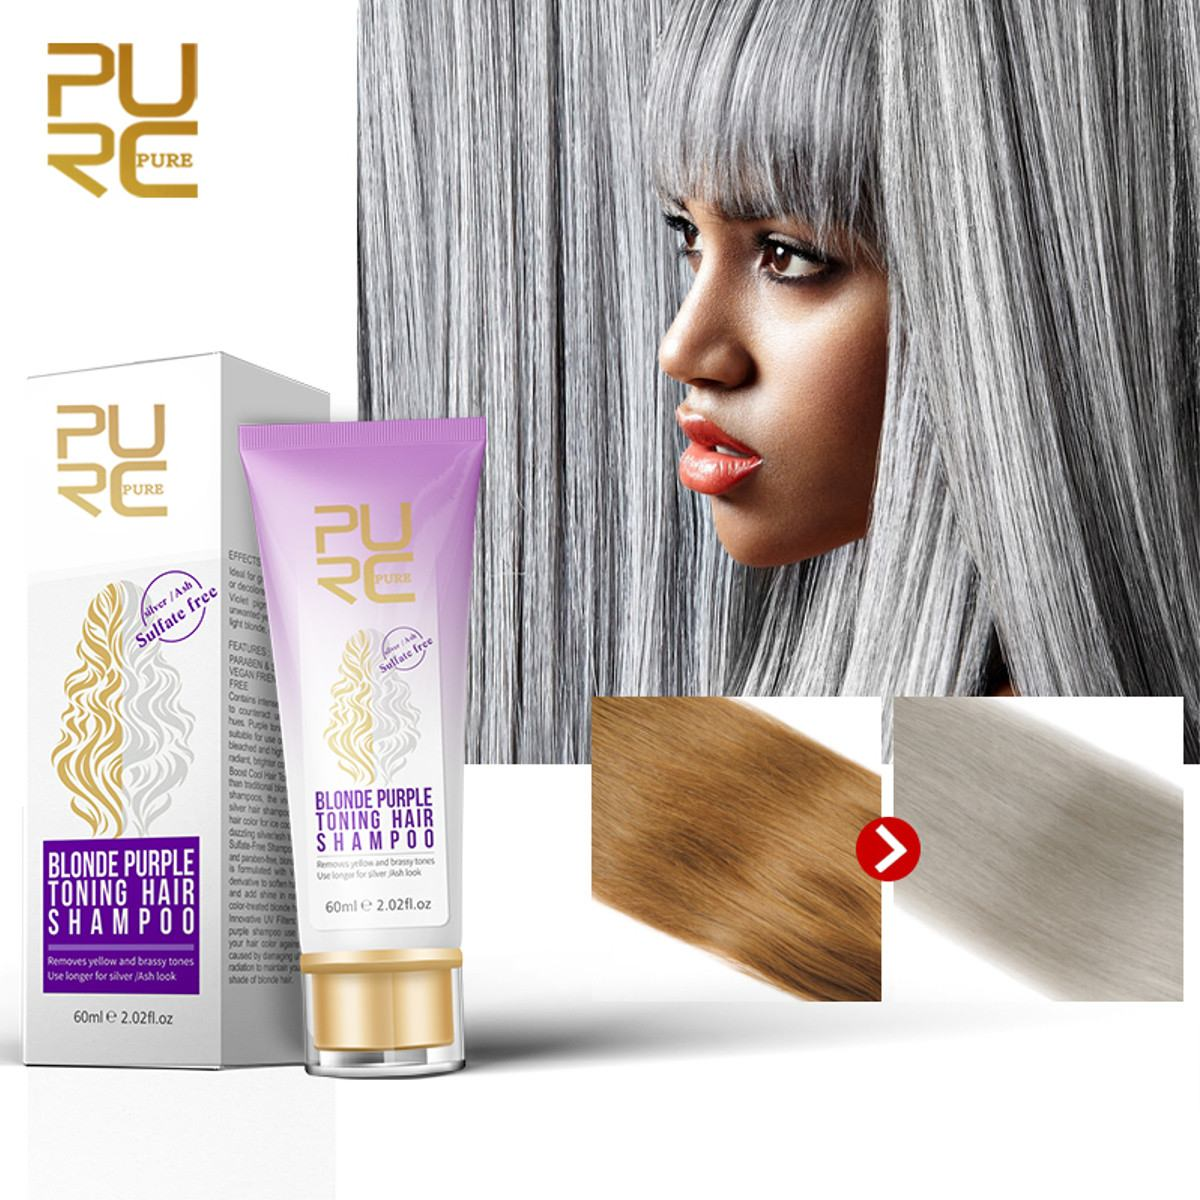 PURC Blonde Purple Hair Shampoo Removes yellow and brassy tones for silver Ash look Purple Hair Shampoo image